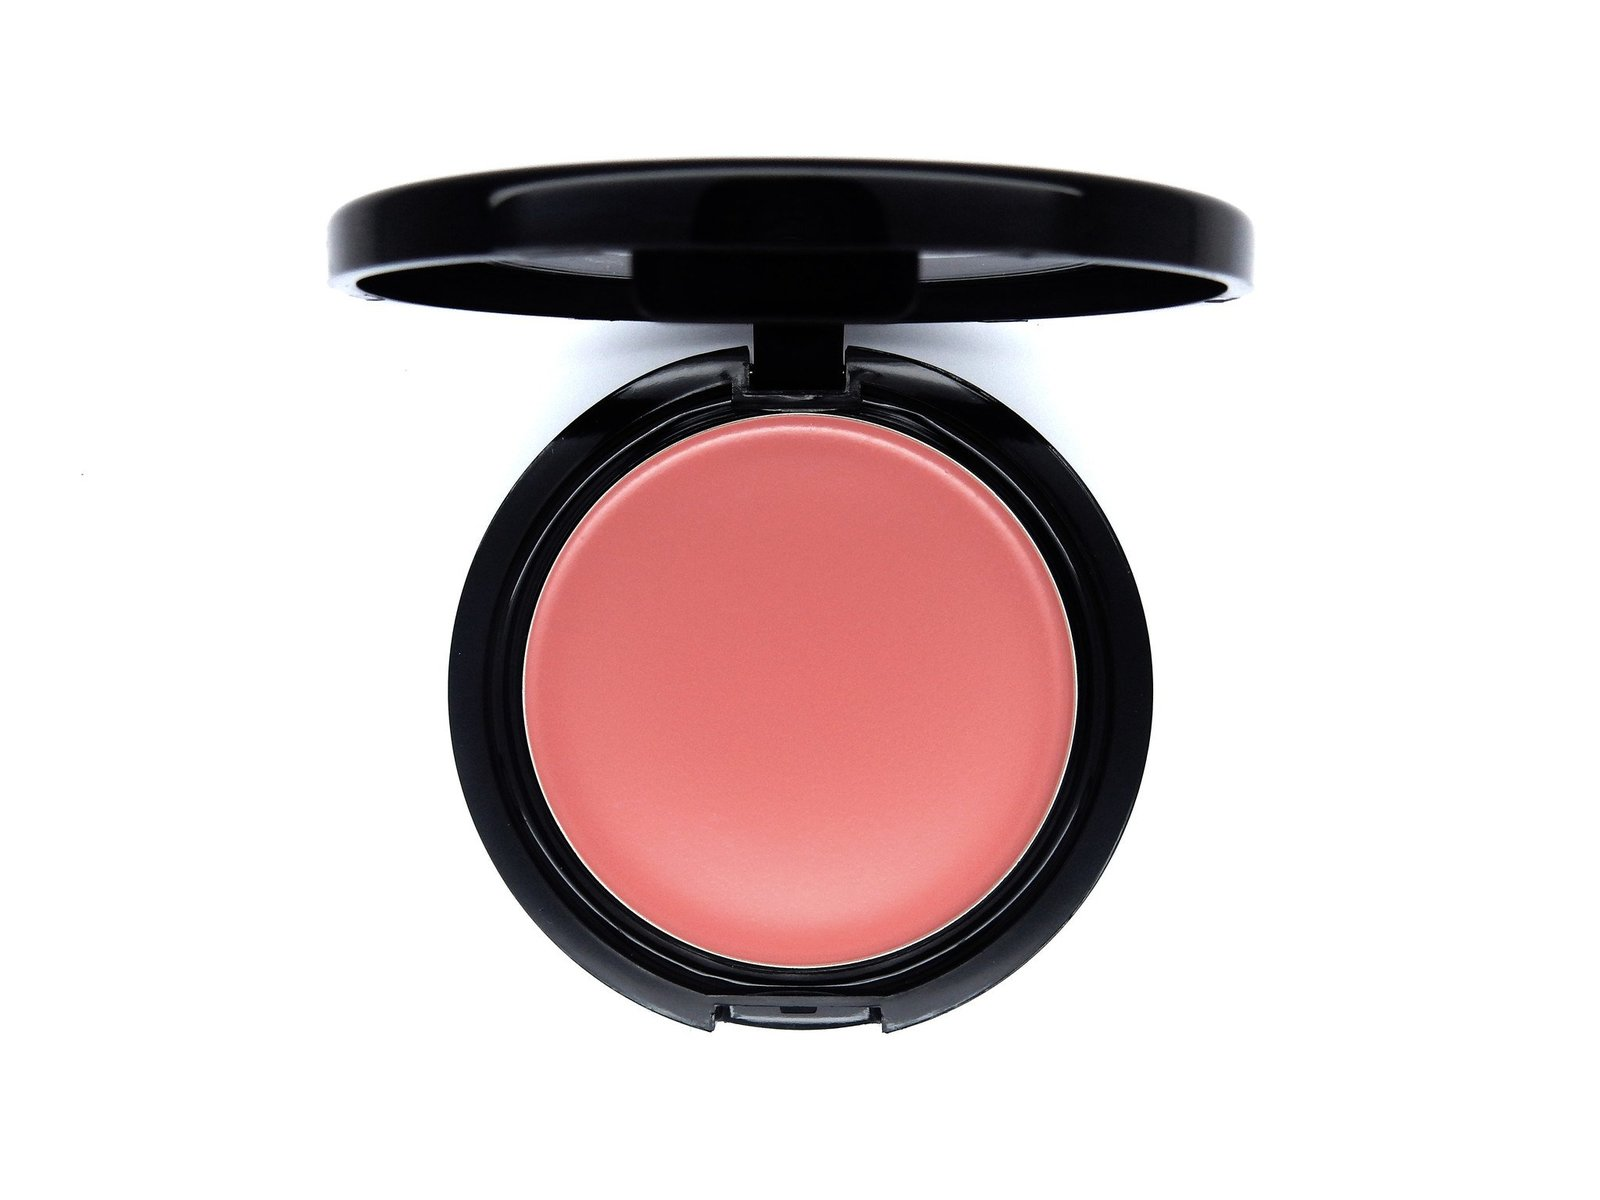 W7 Creme de la Creme Blush (Heavenly) image